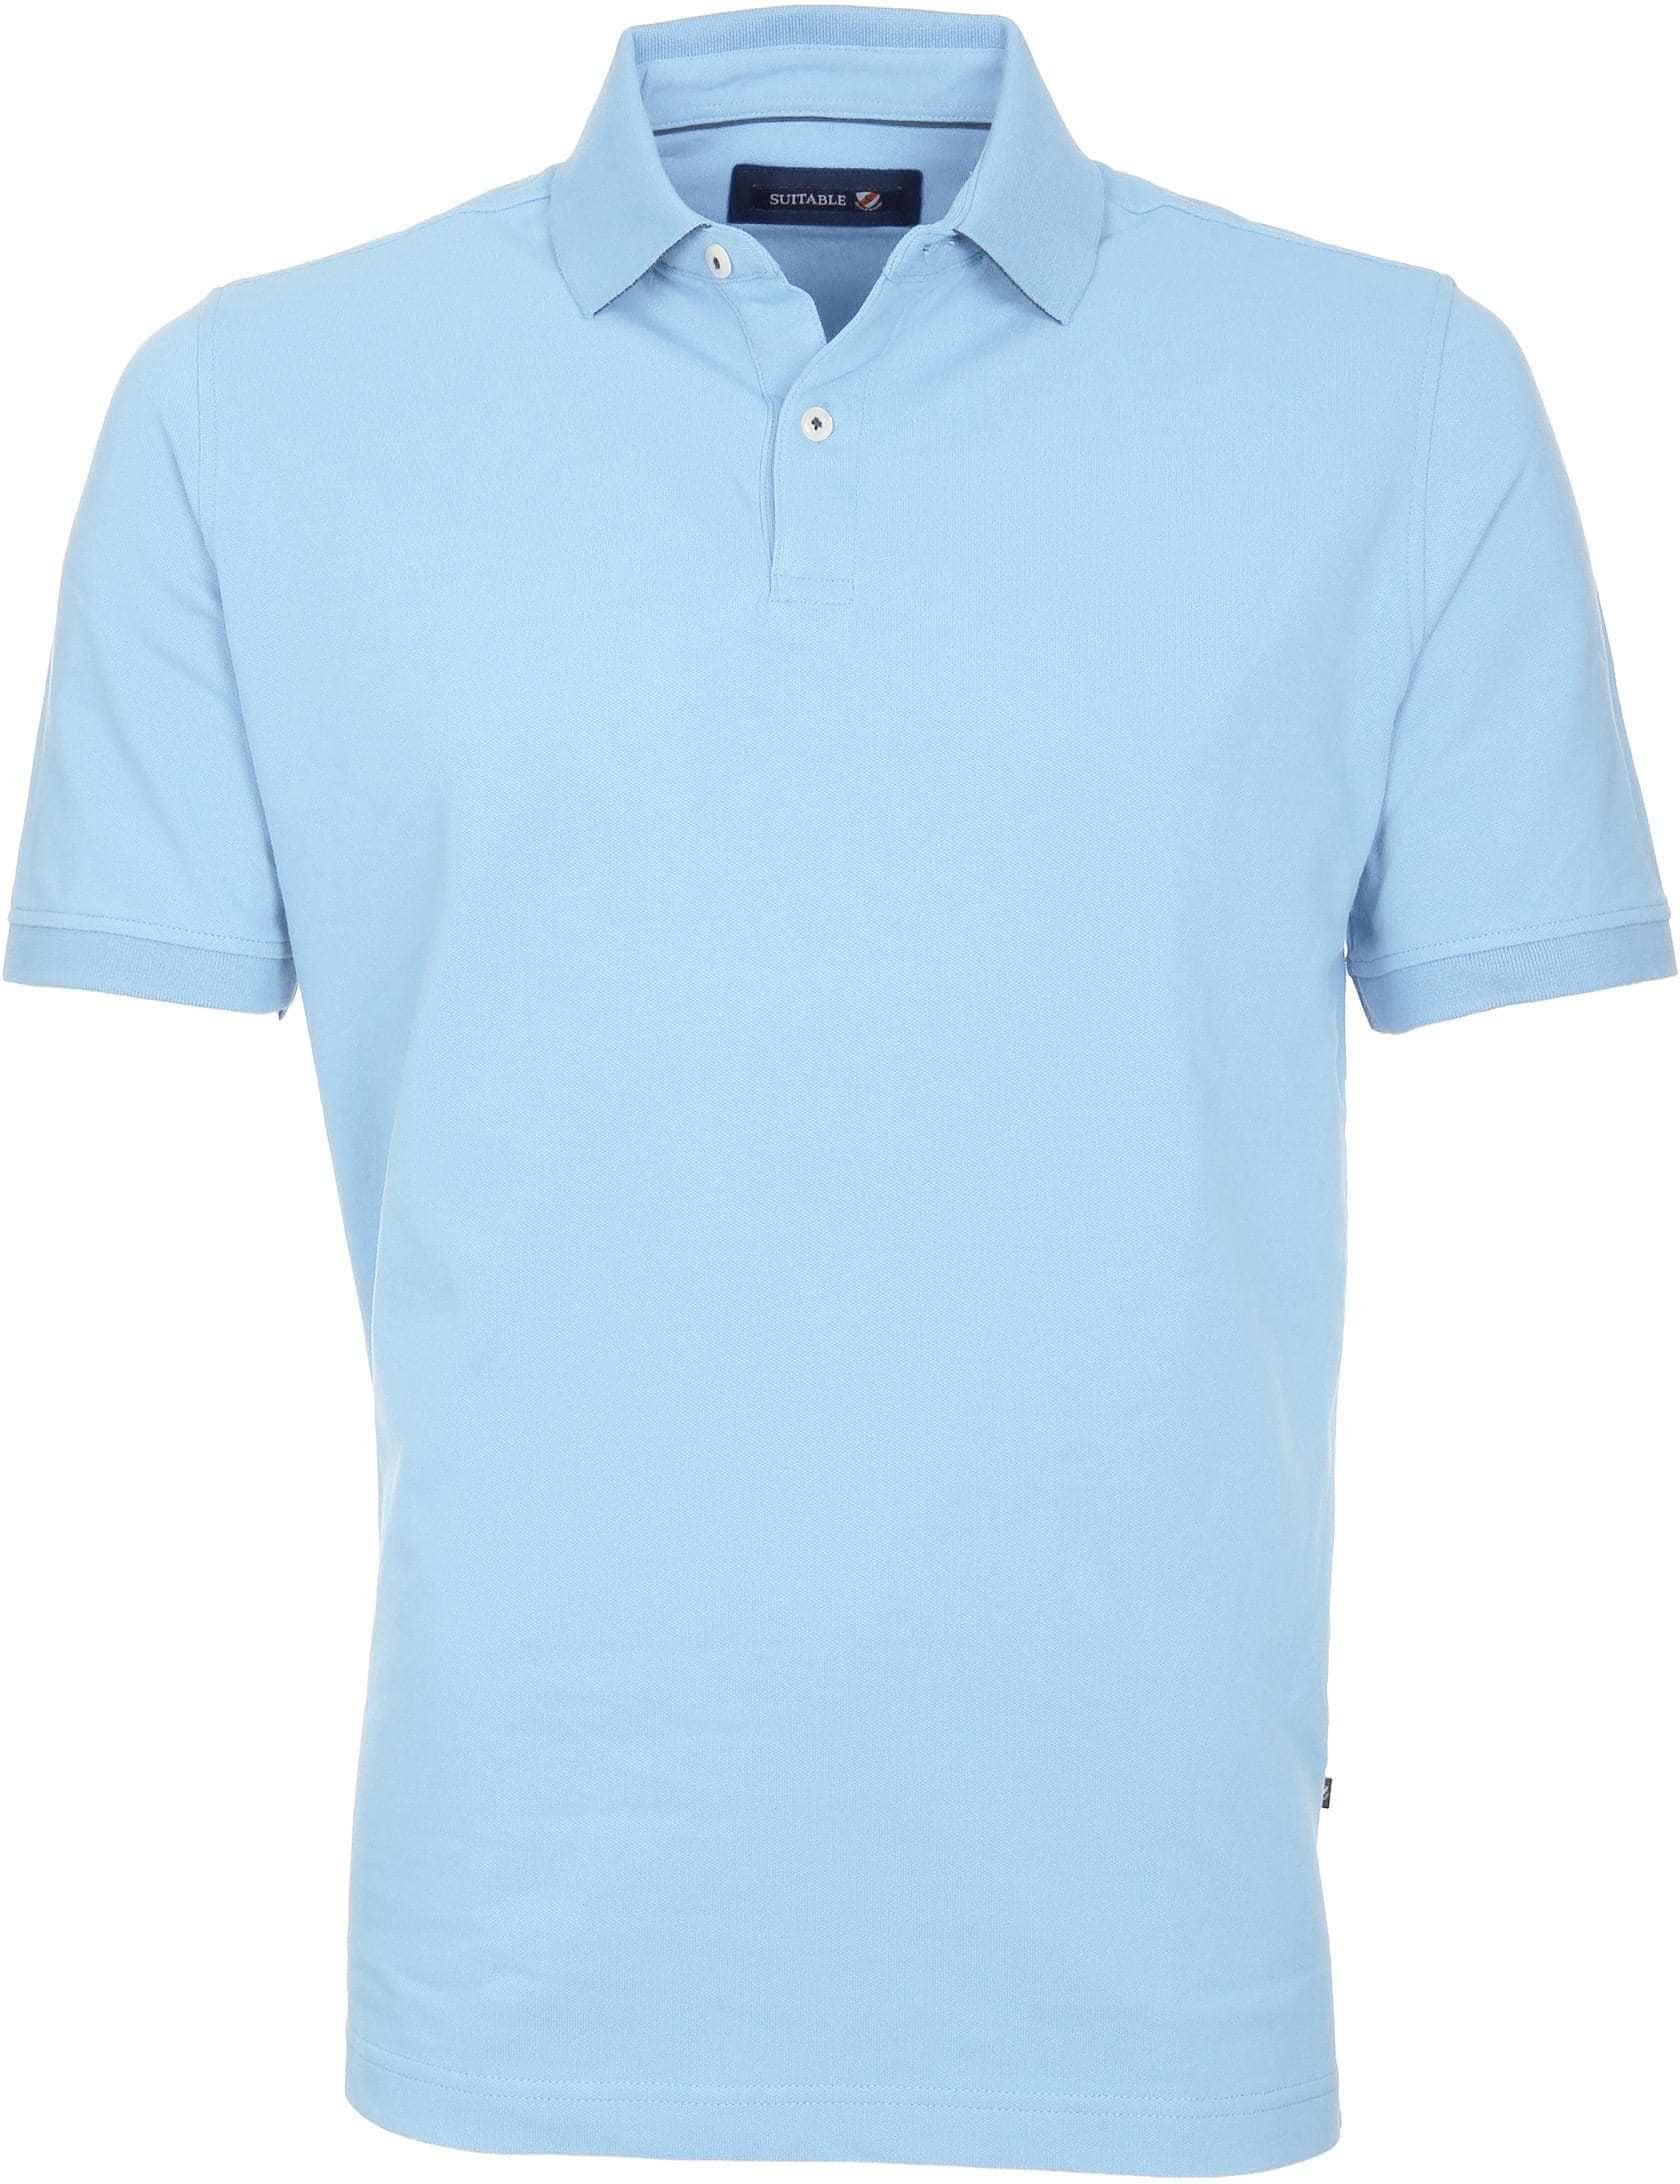 Suitable Poloshirt Basic Hellblau foto 0